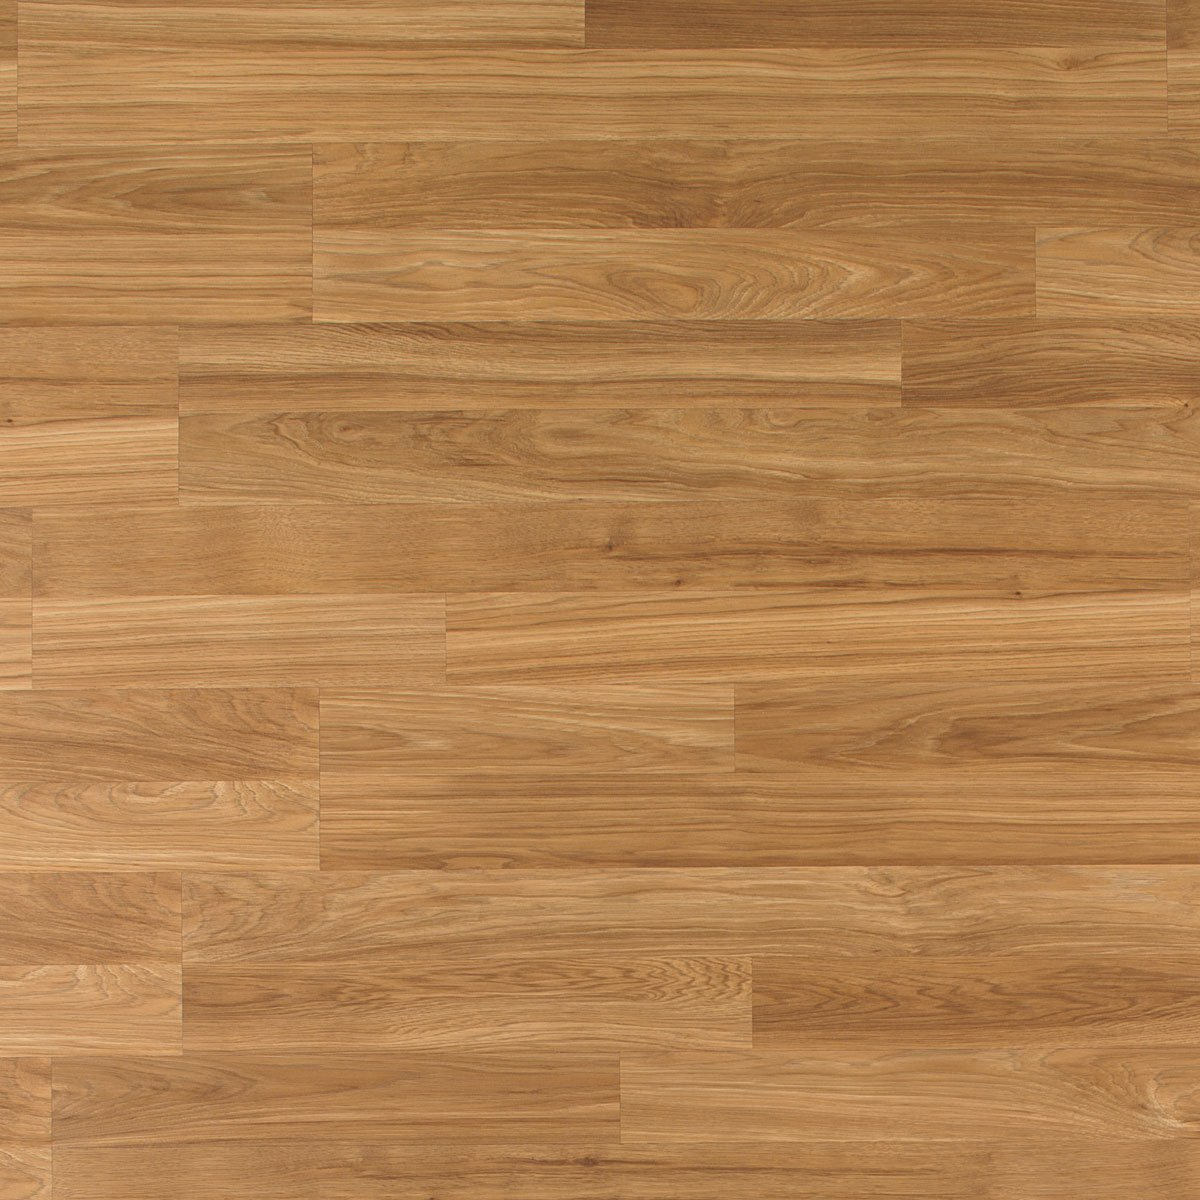 HOME COLLECTION Cane Hickory 8mm Laminate Flooring by